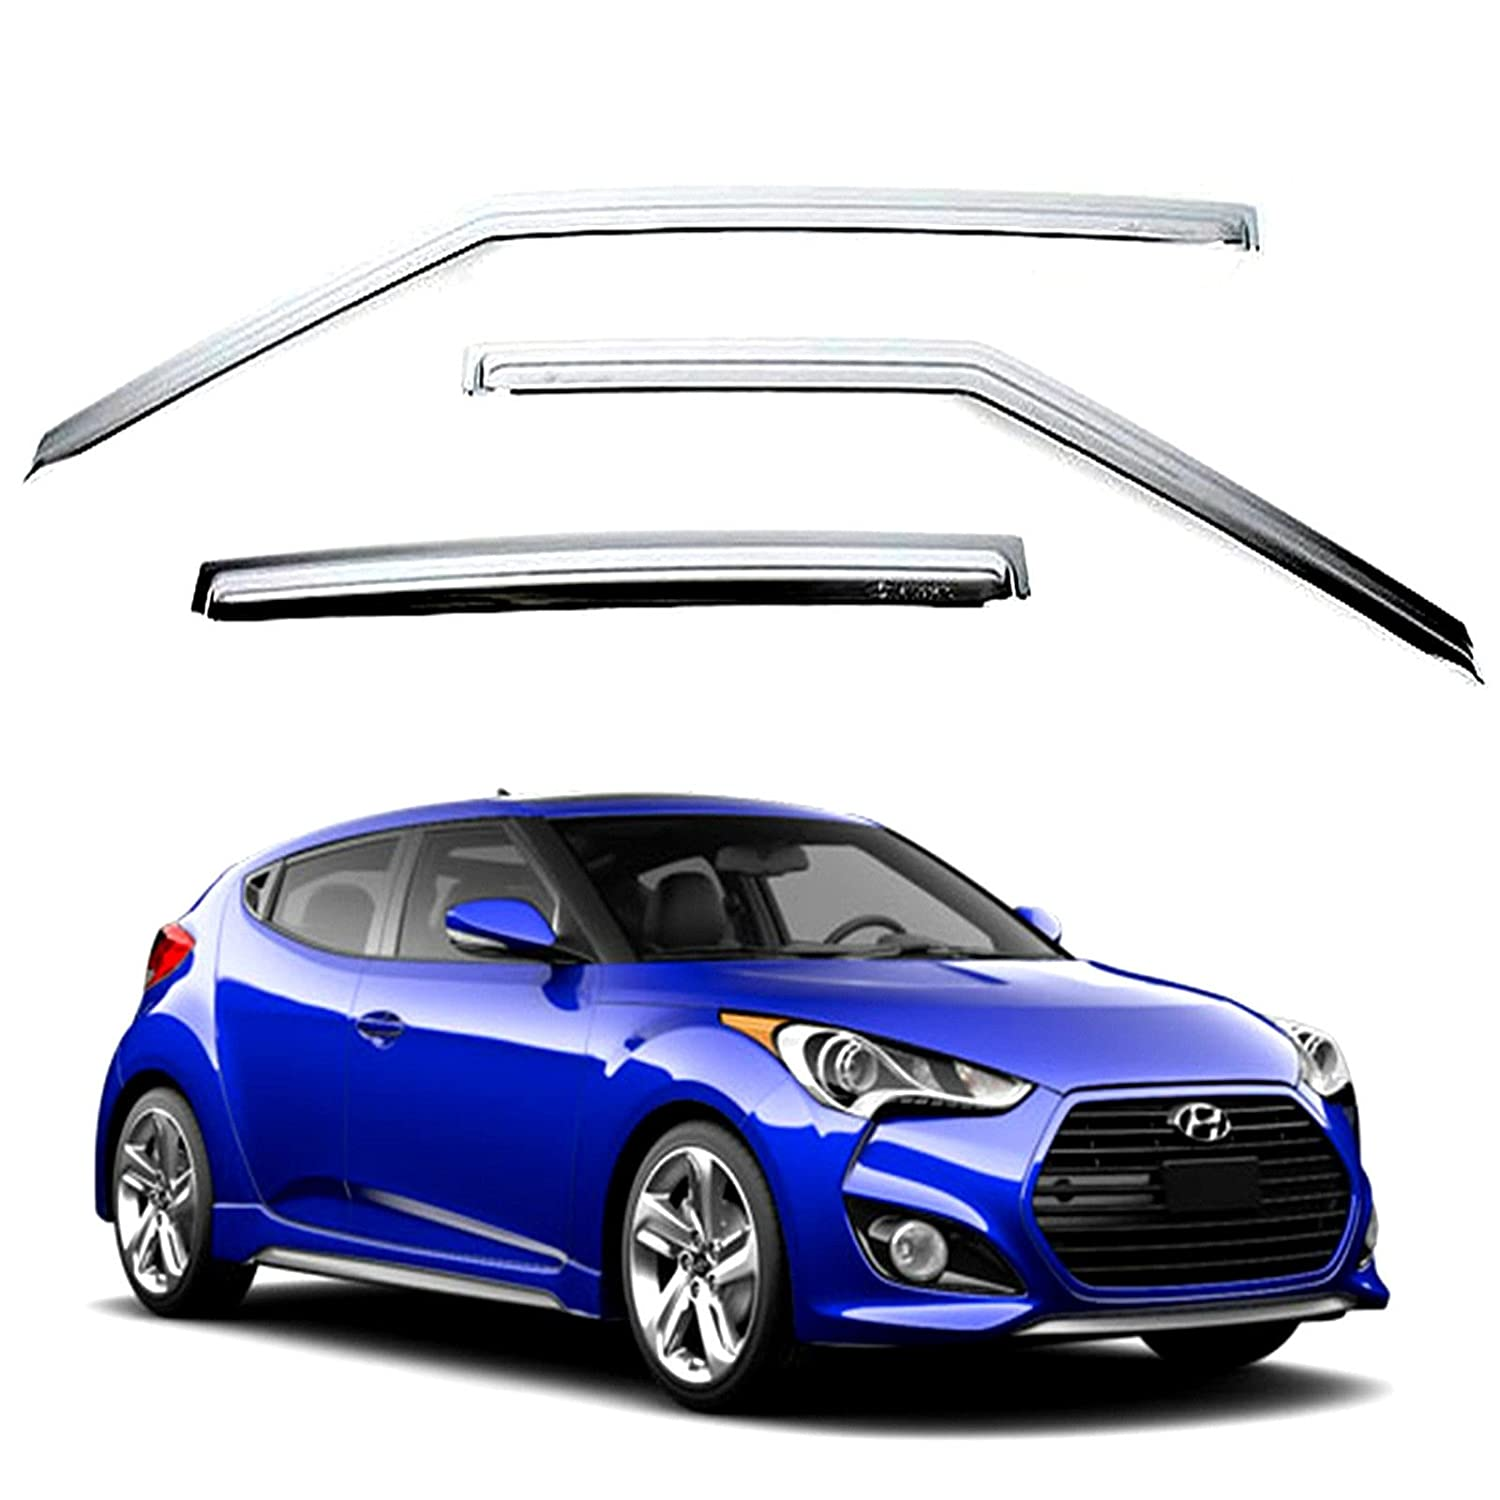 Amazon.com: Chrome Sun Visors Vent Shade/Rain Window Guards for 2011 2012 2013 2014 Hyundai Veloster: Automotive